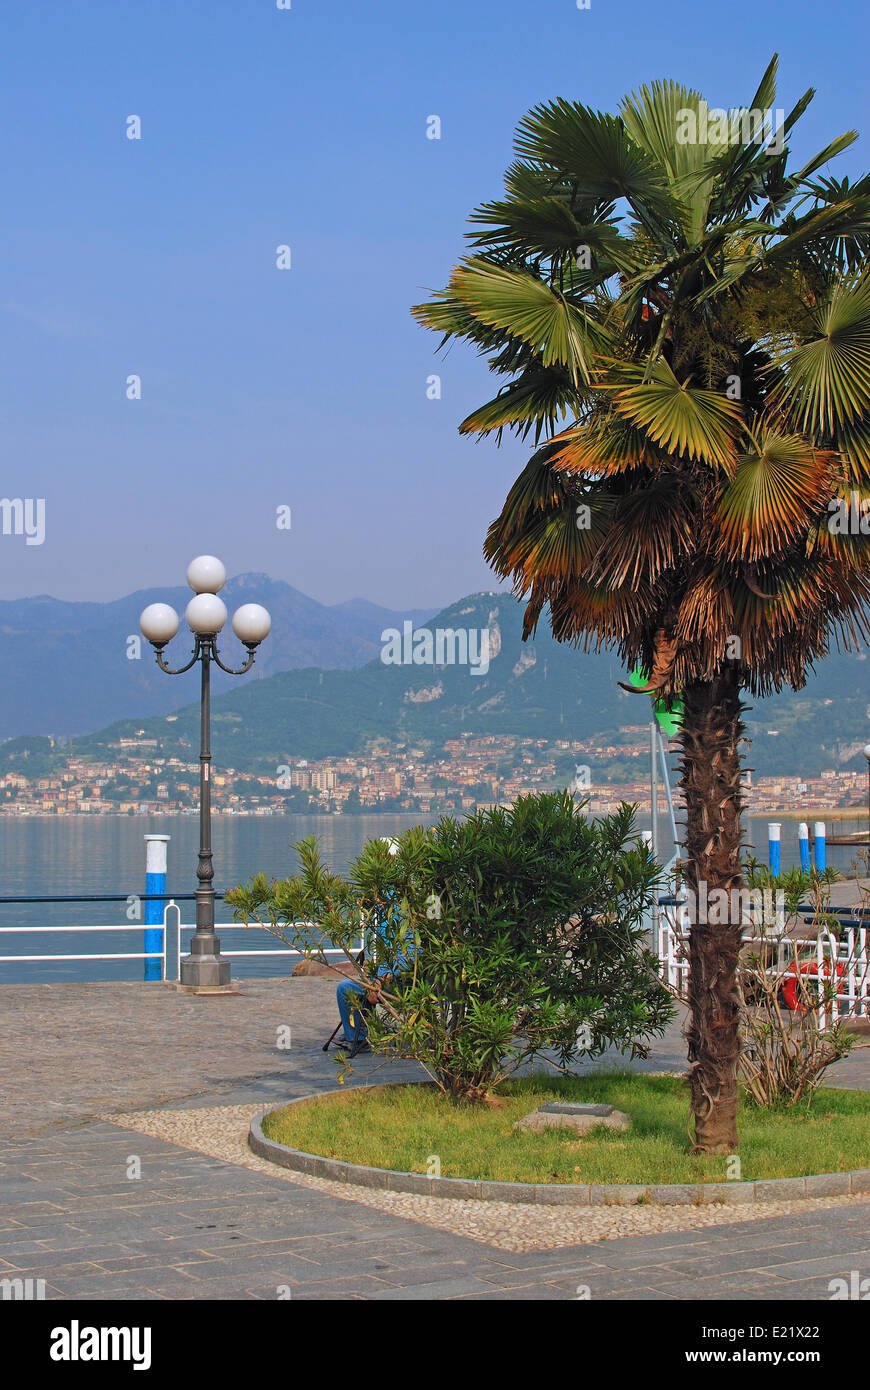 on Lake Iseo in Lombardy Italy - Stock Image